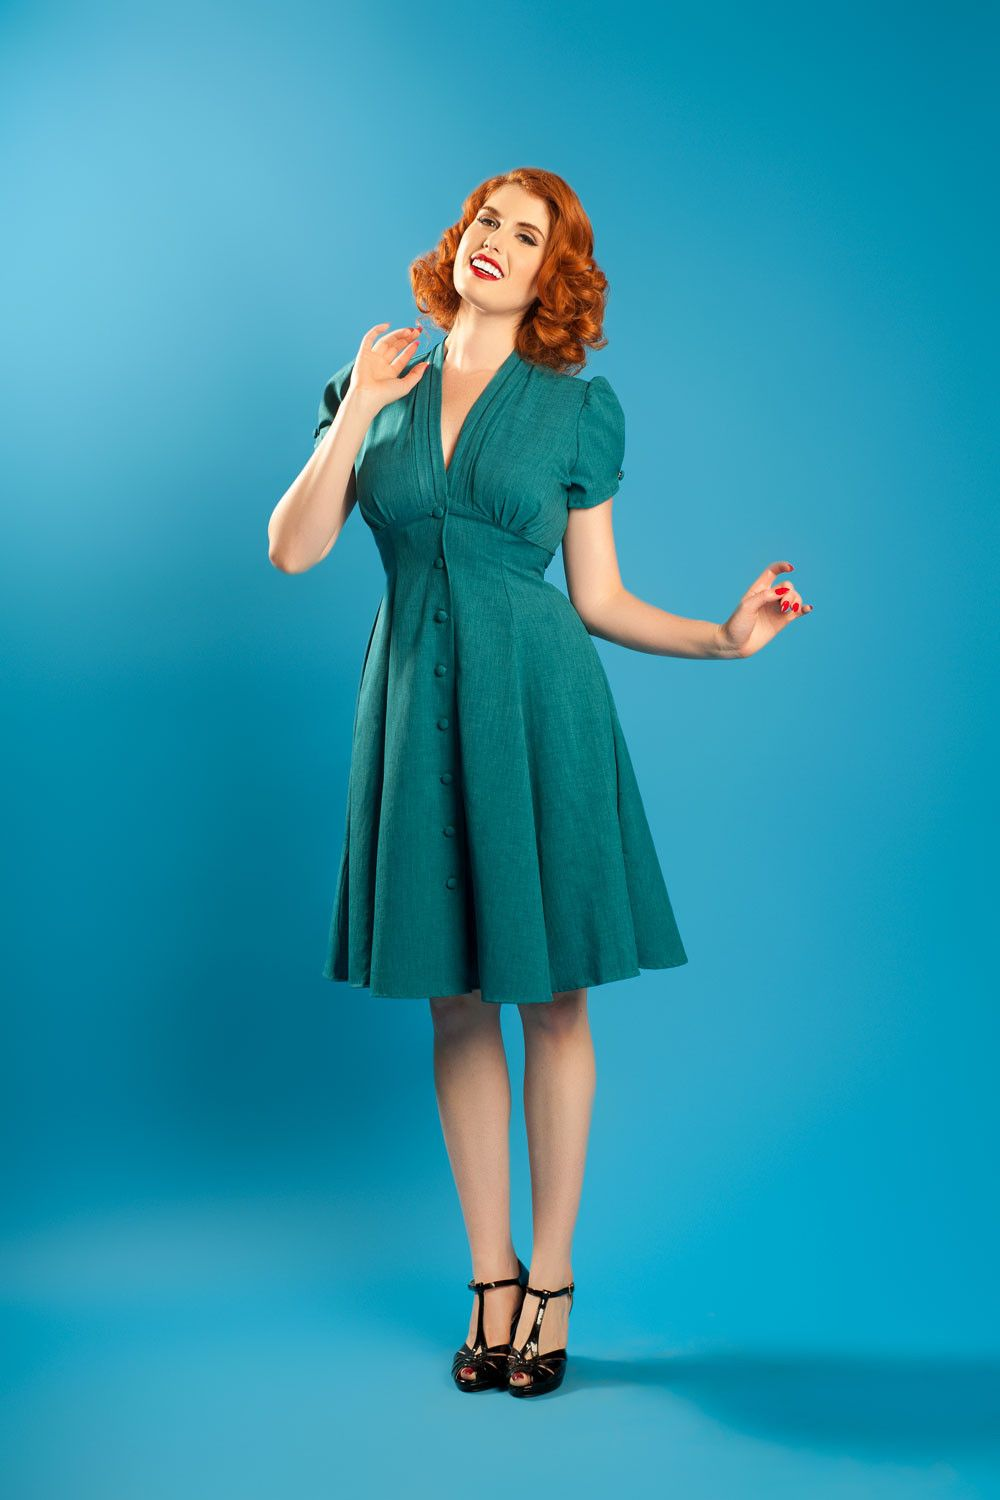 Haute Of Heart Manhattan 1940 S Style Dress In Teal 1940s Fashion Dresses Manhattan Dress Pinup Girl Clothing